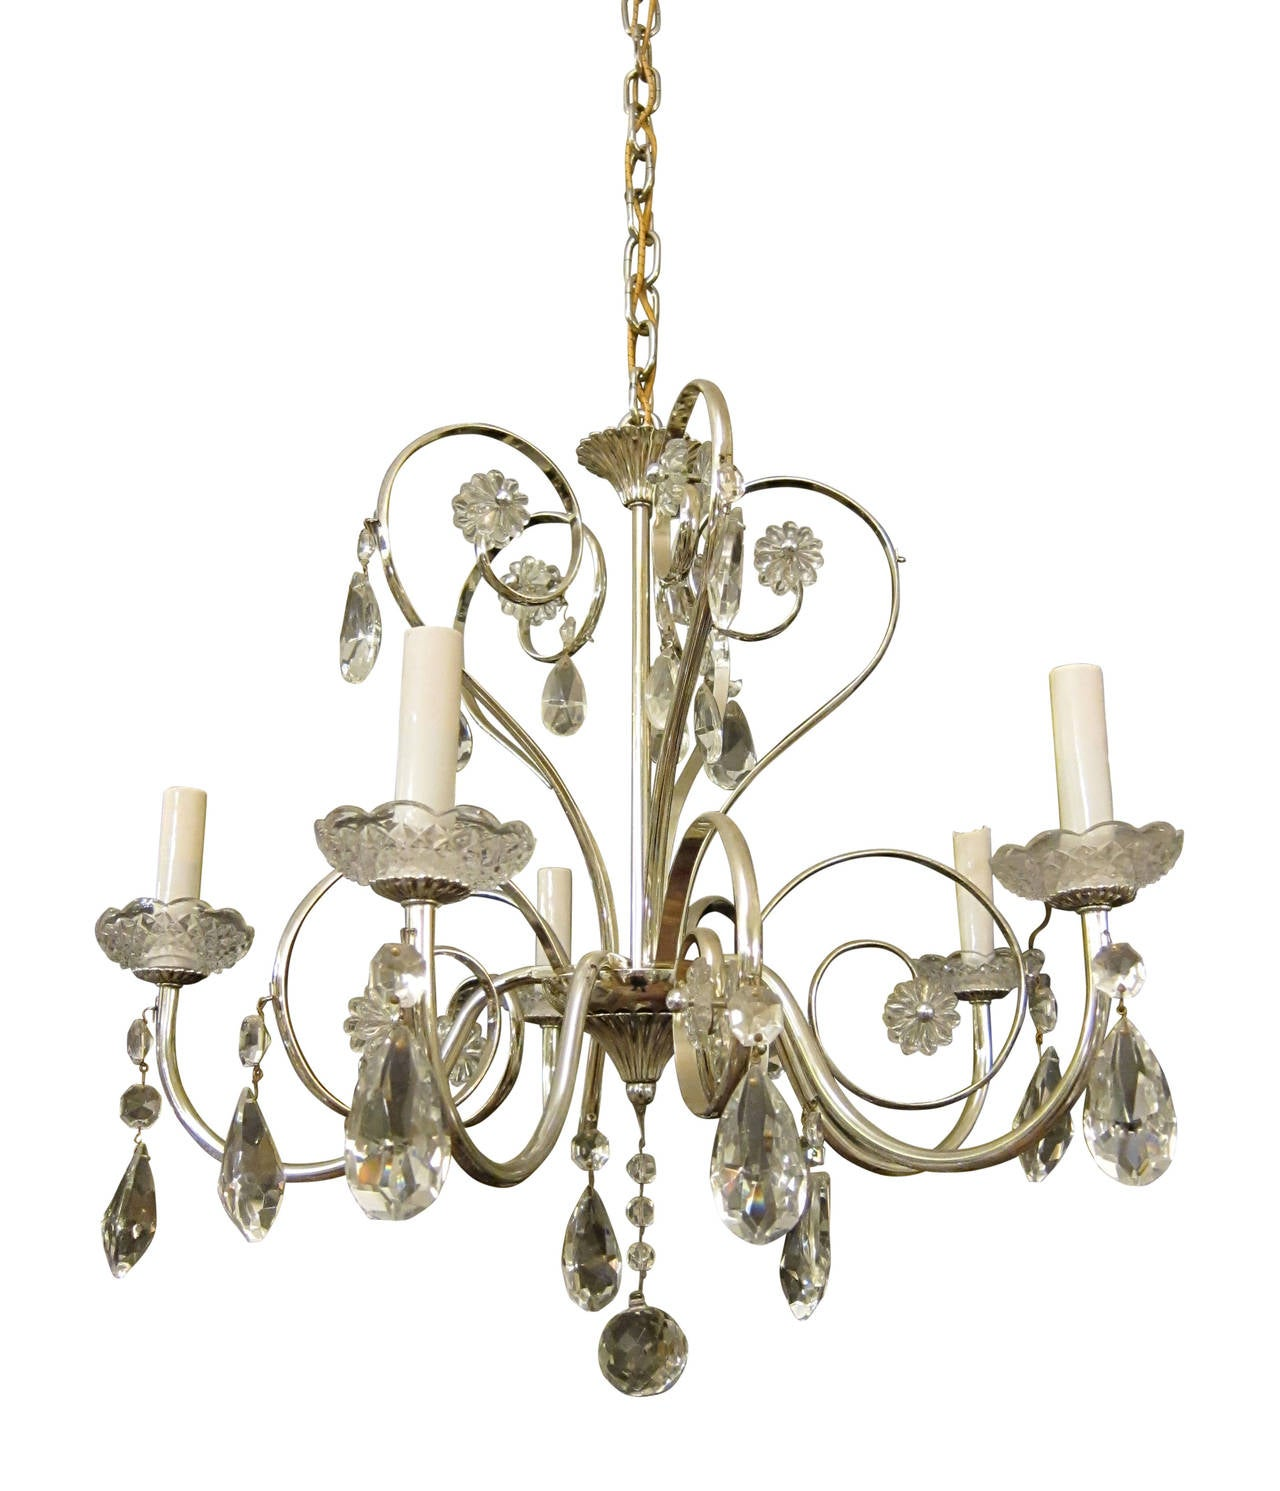 1950s French Silver Plated Crystal Chandelier For Sale at